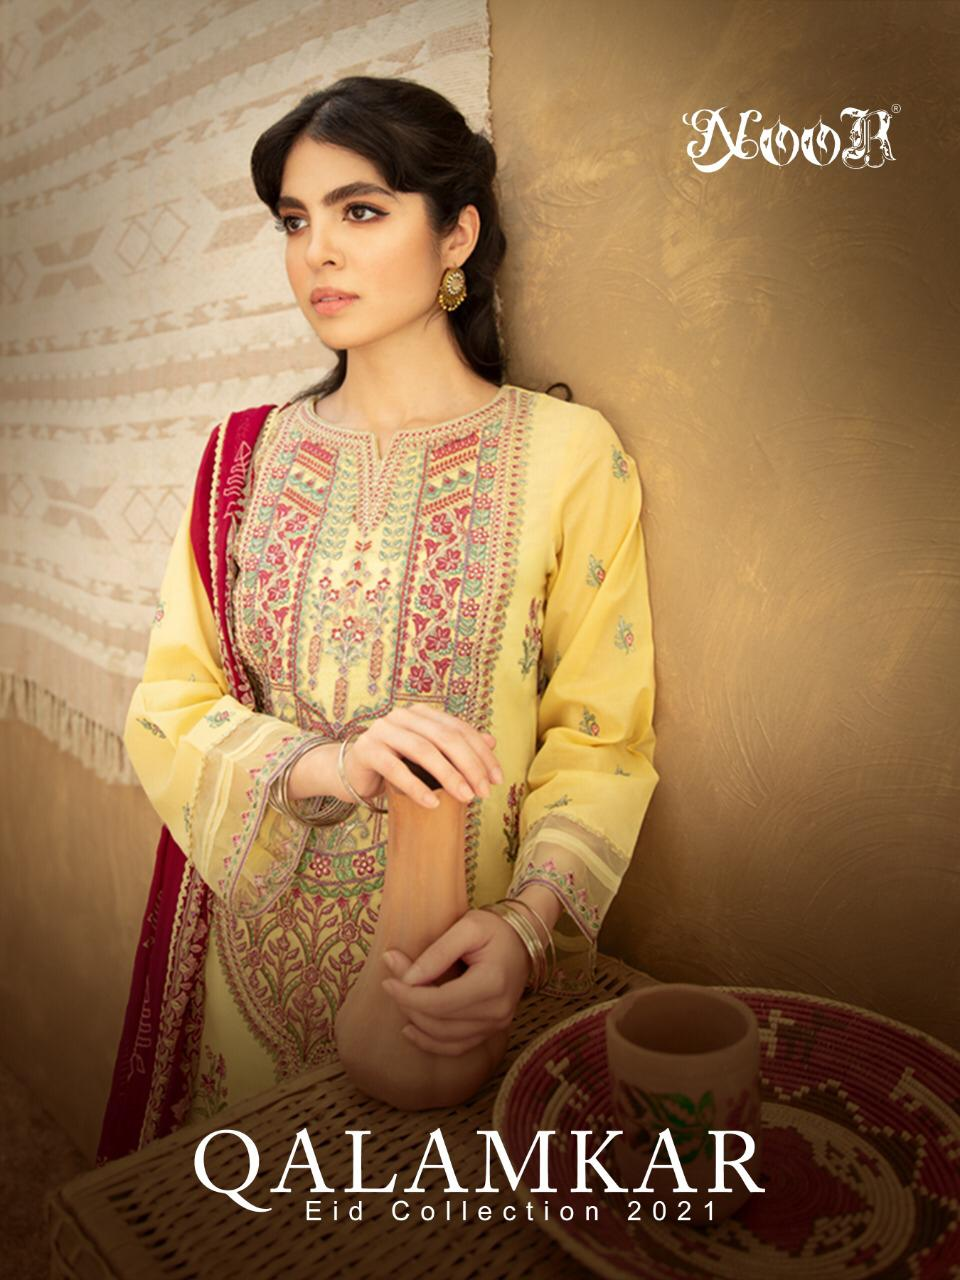 Noor Qalamkar Eid Collection Pure Cotton With Exclusive Self Embroidery Suit